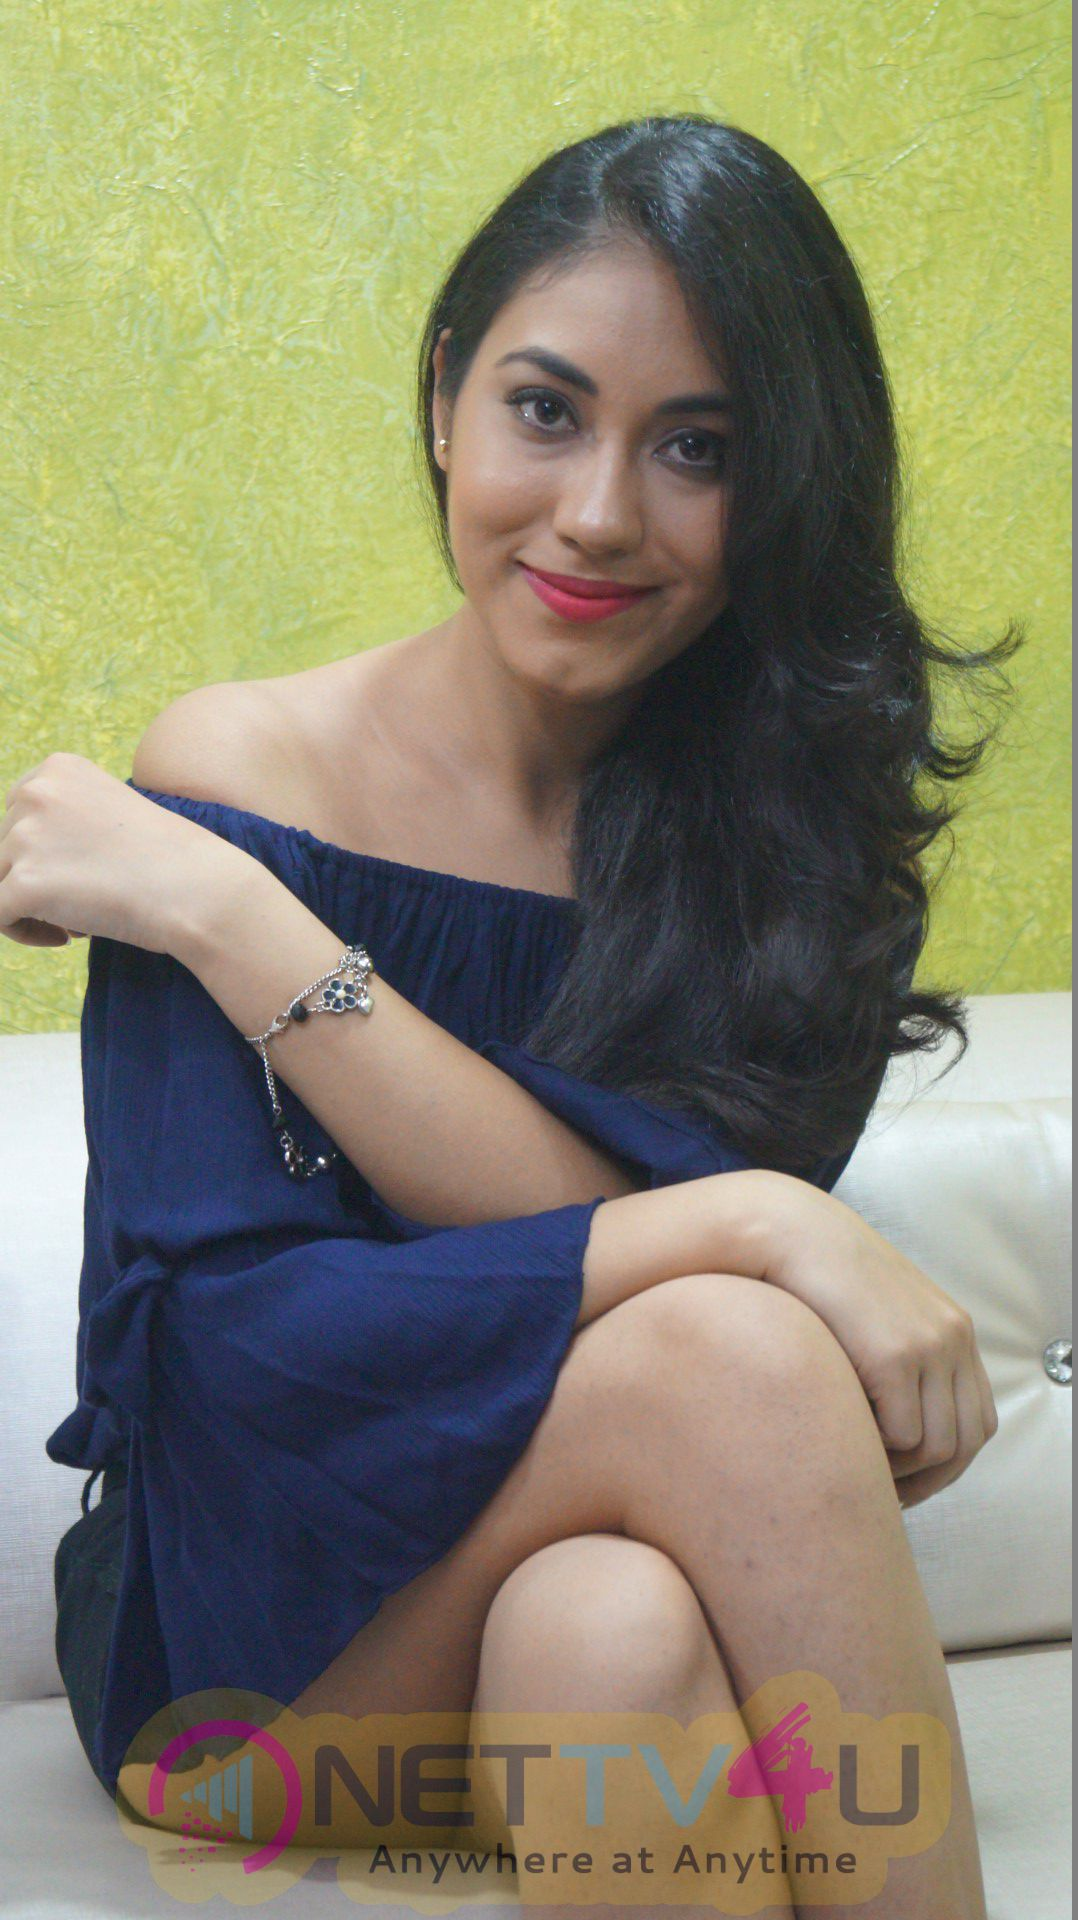 Images of Aradhana Jagota For Film Kerry On Kutton,Interview